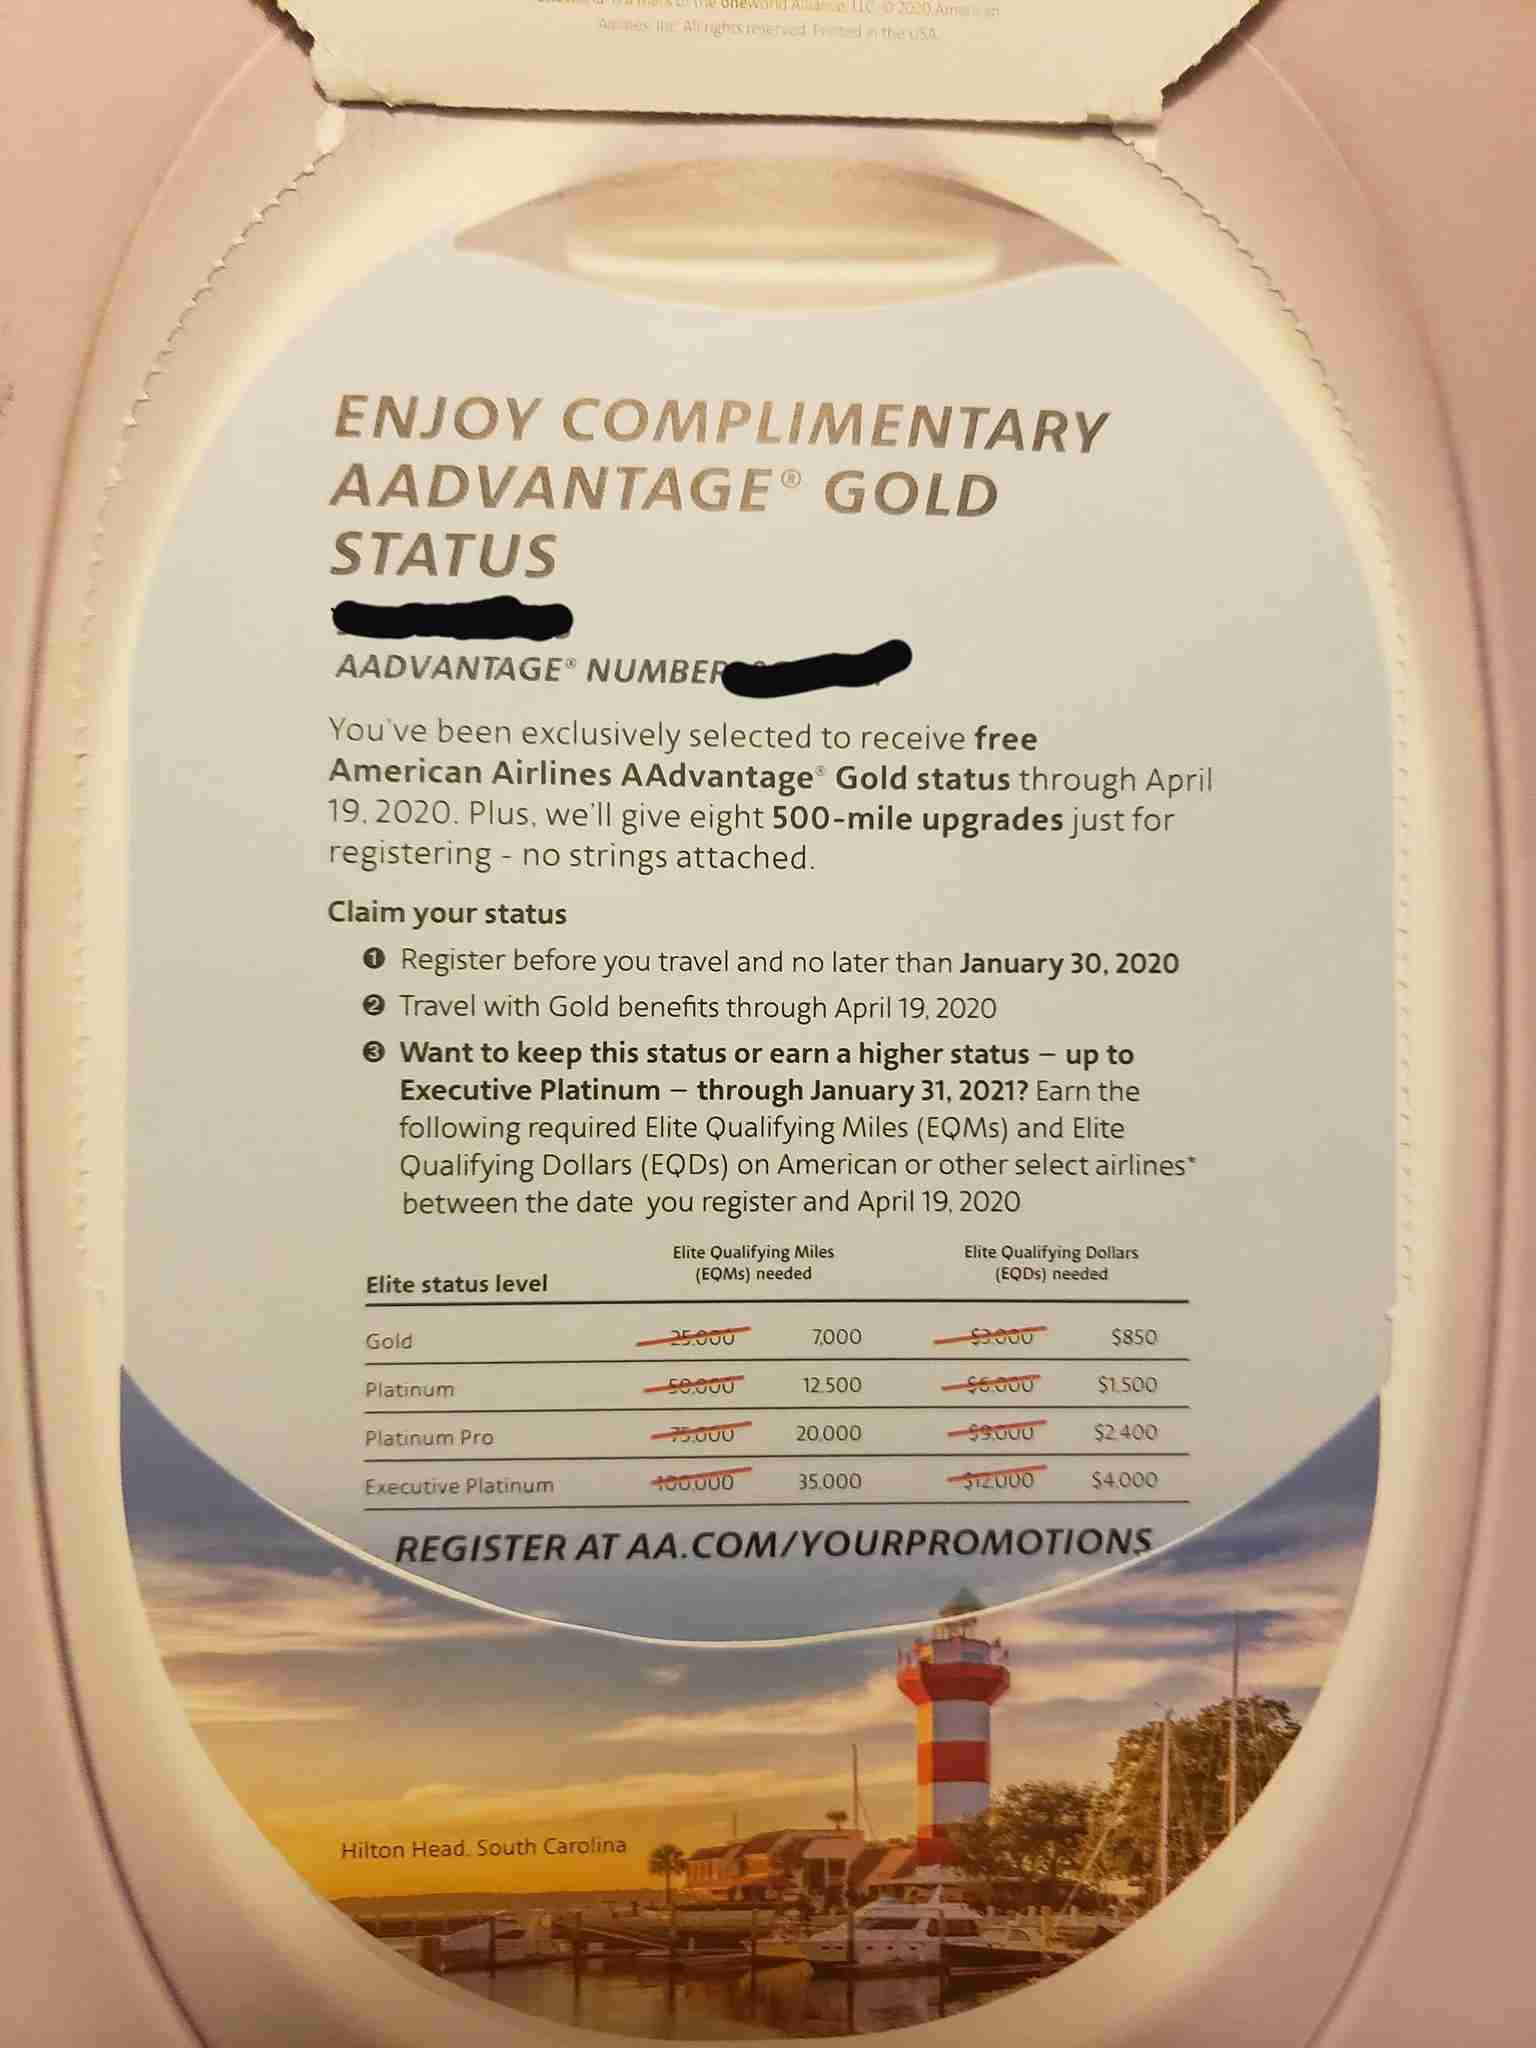 Offer for complimentary Gold status in AA mailer. (Photo courtesy Sarah in the TPG Lounge)